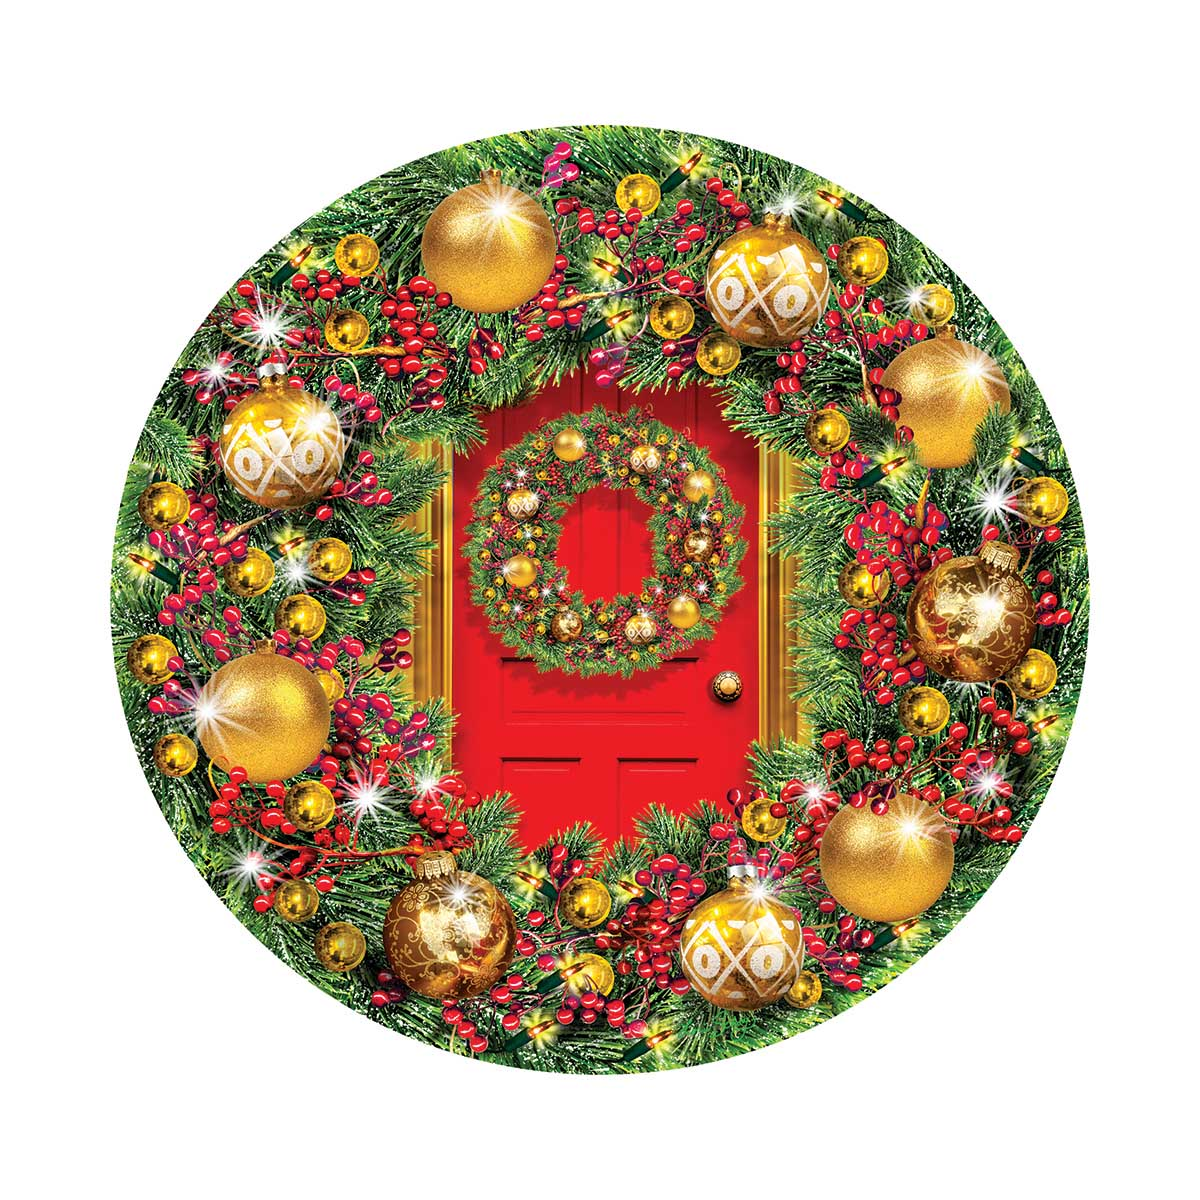 Green and Gold Wreath Christmas Jigsaw Puzzle